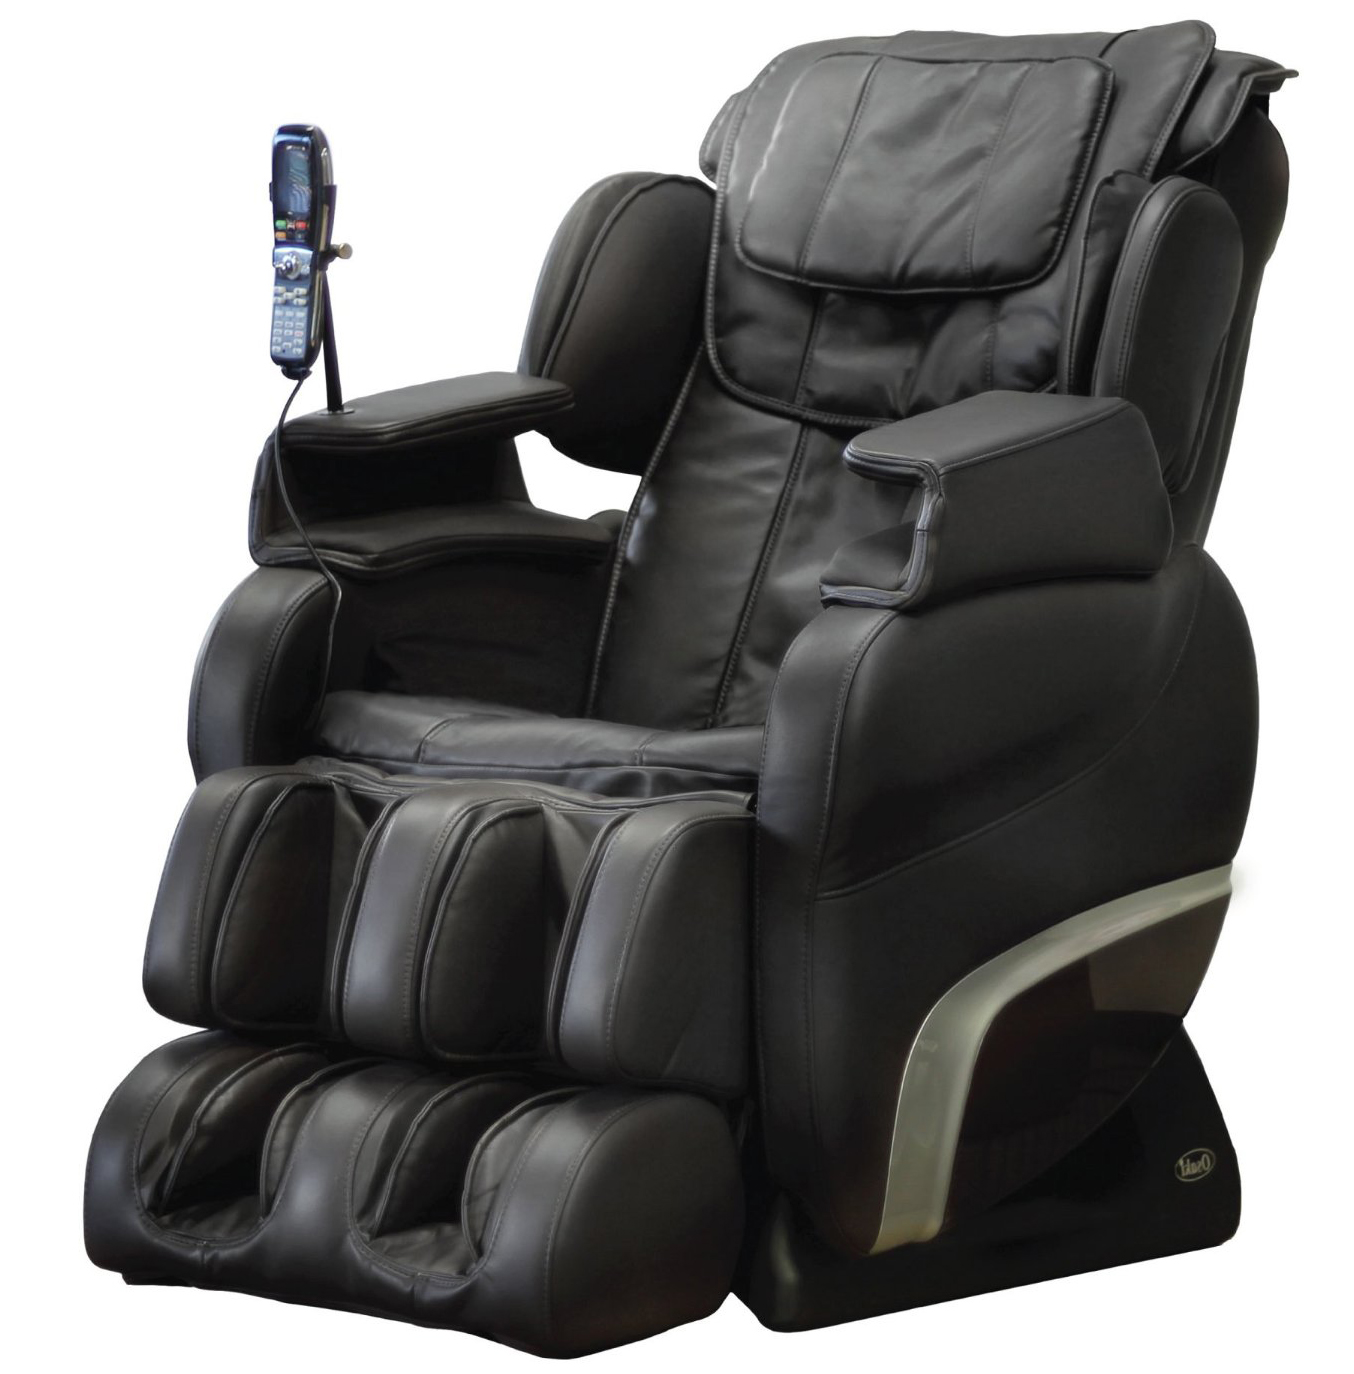 back massage chairs for sale hanging chair bedroom titan ti 7700r recliner